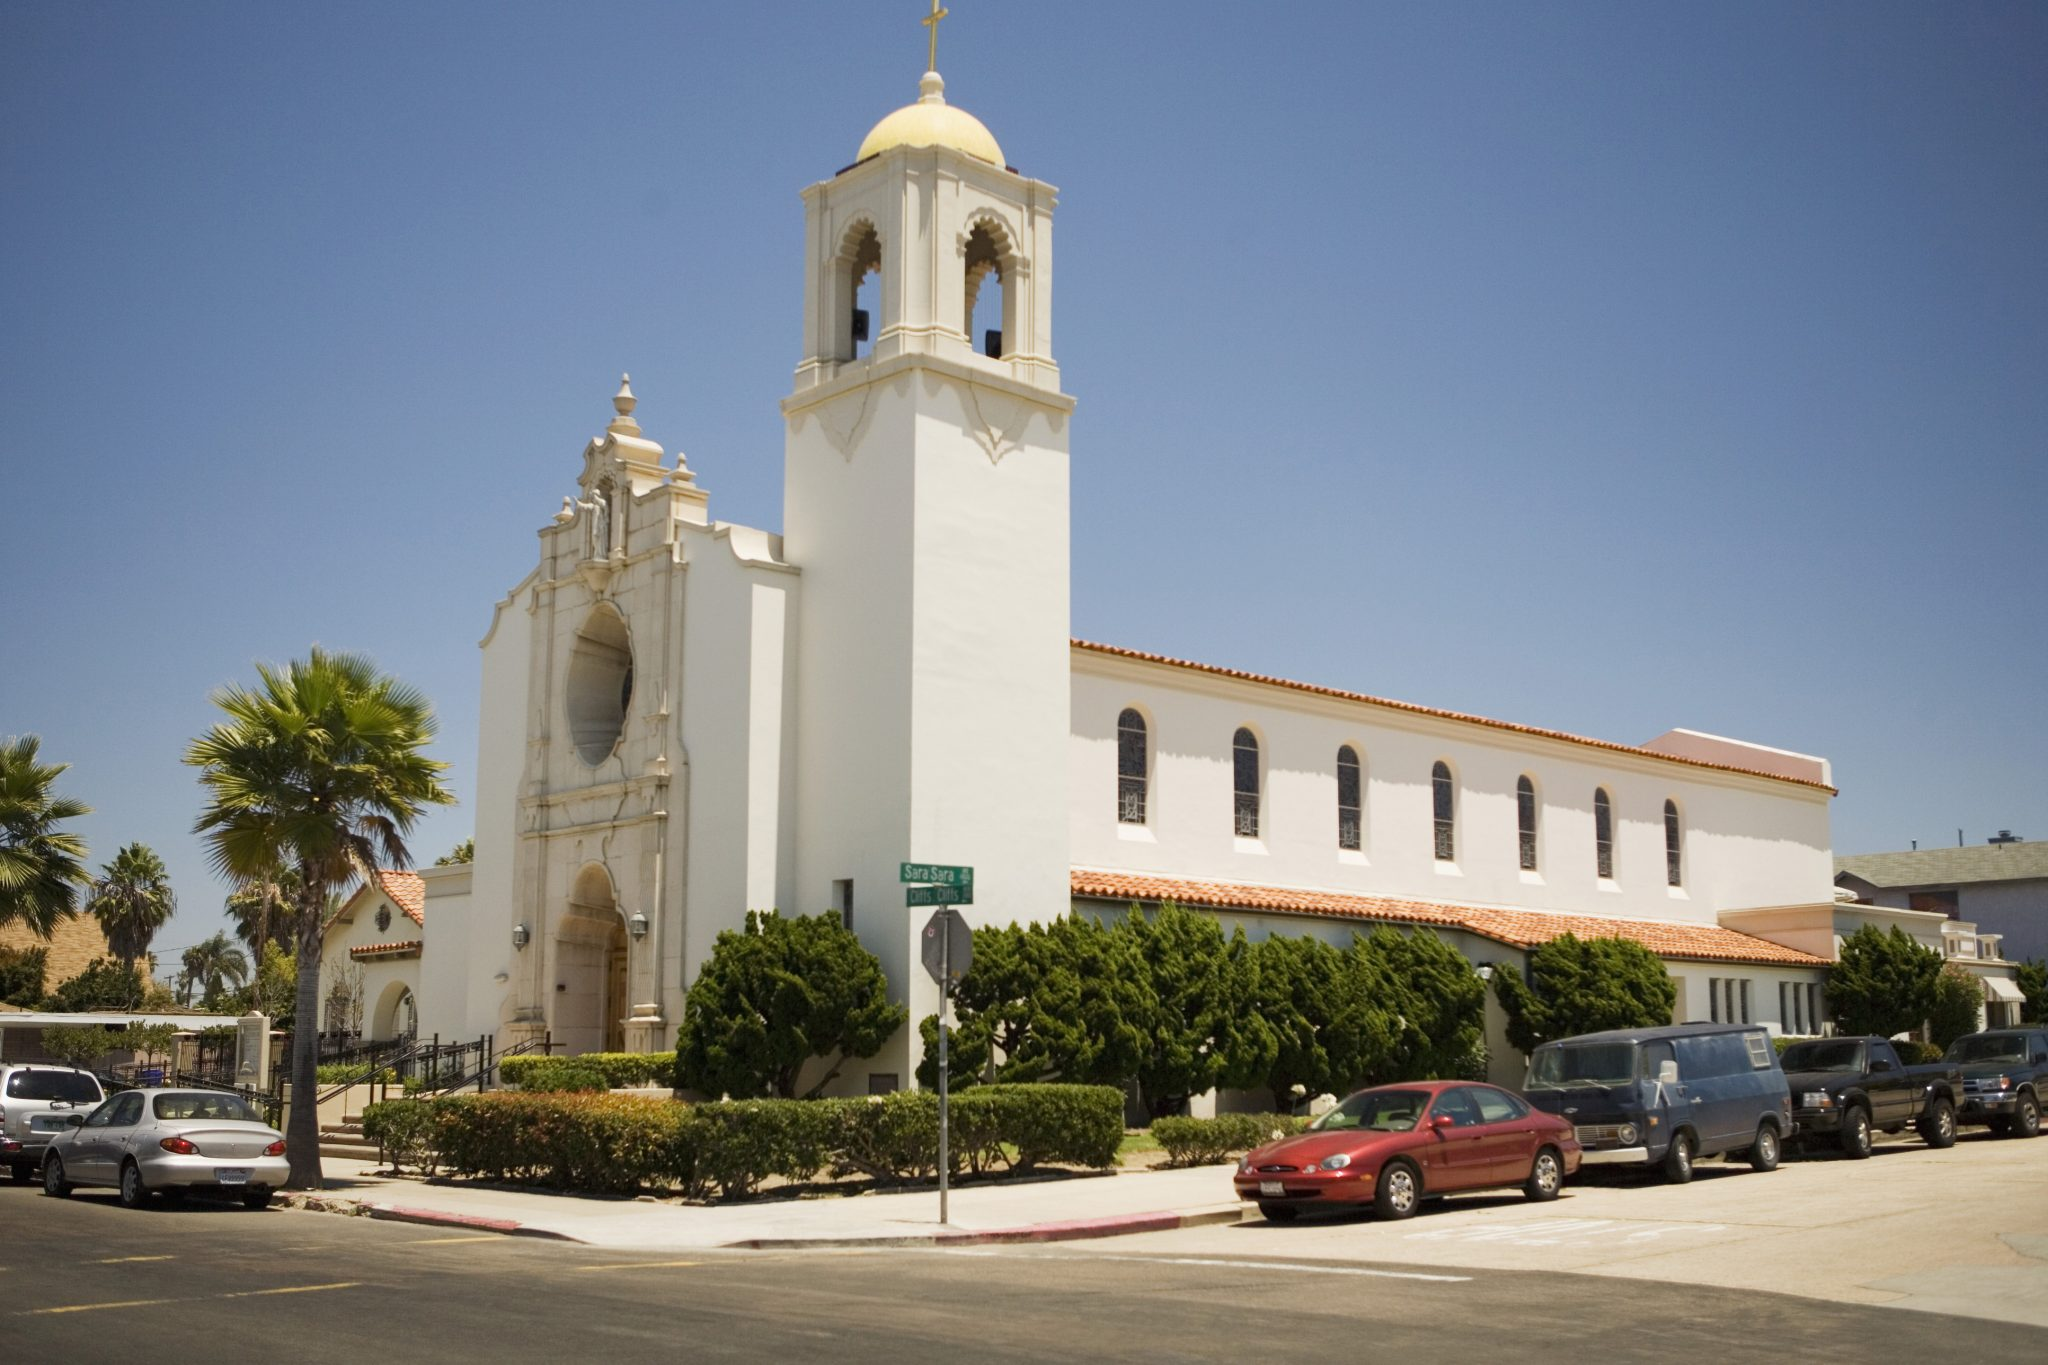 Cars Parked Outside A Church, Sacred Heart Church, San Diego, California, USA